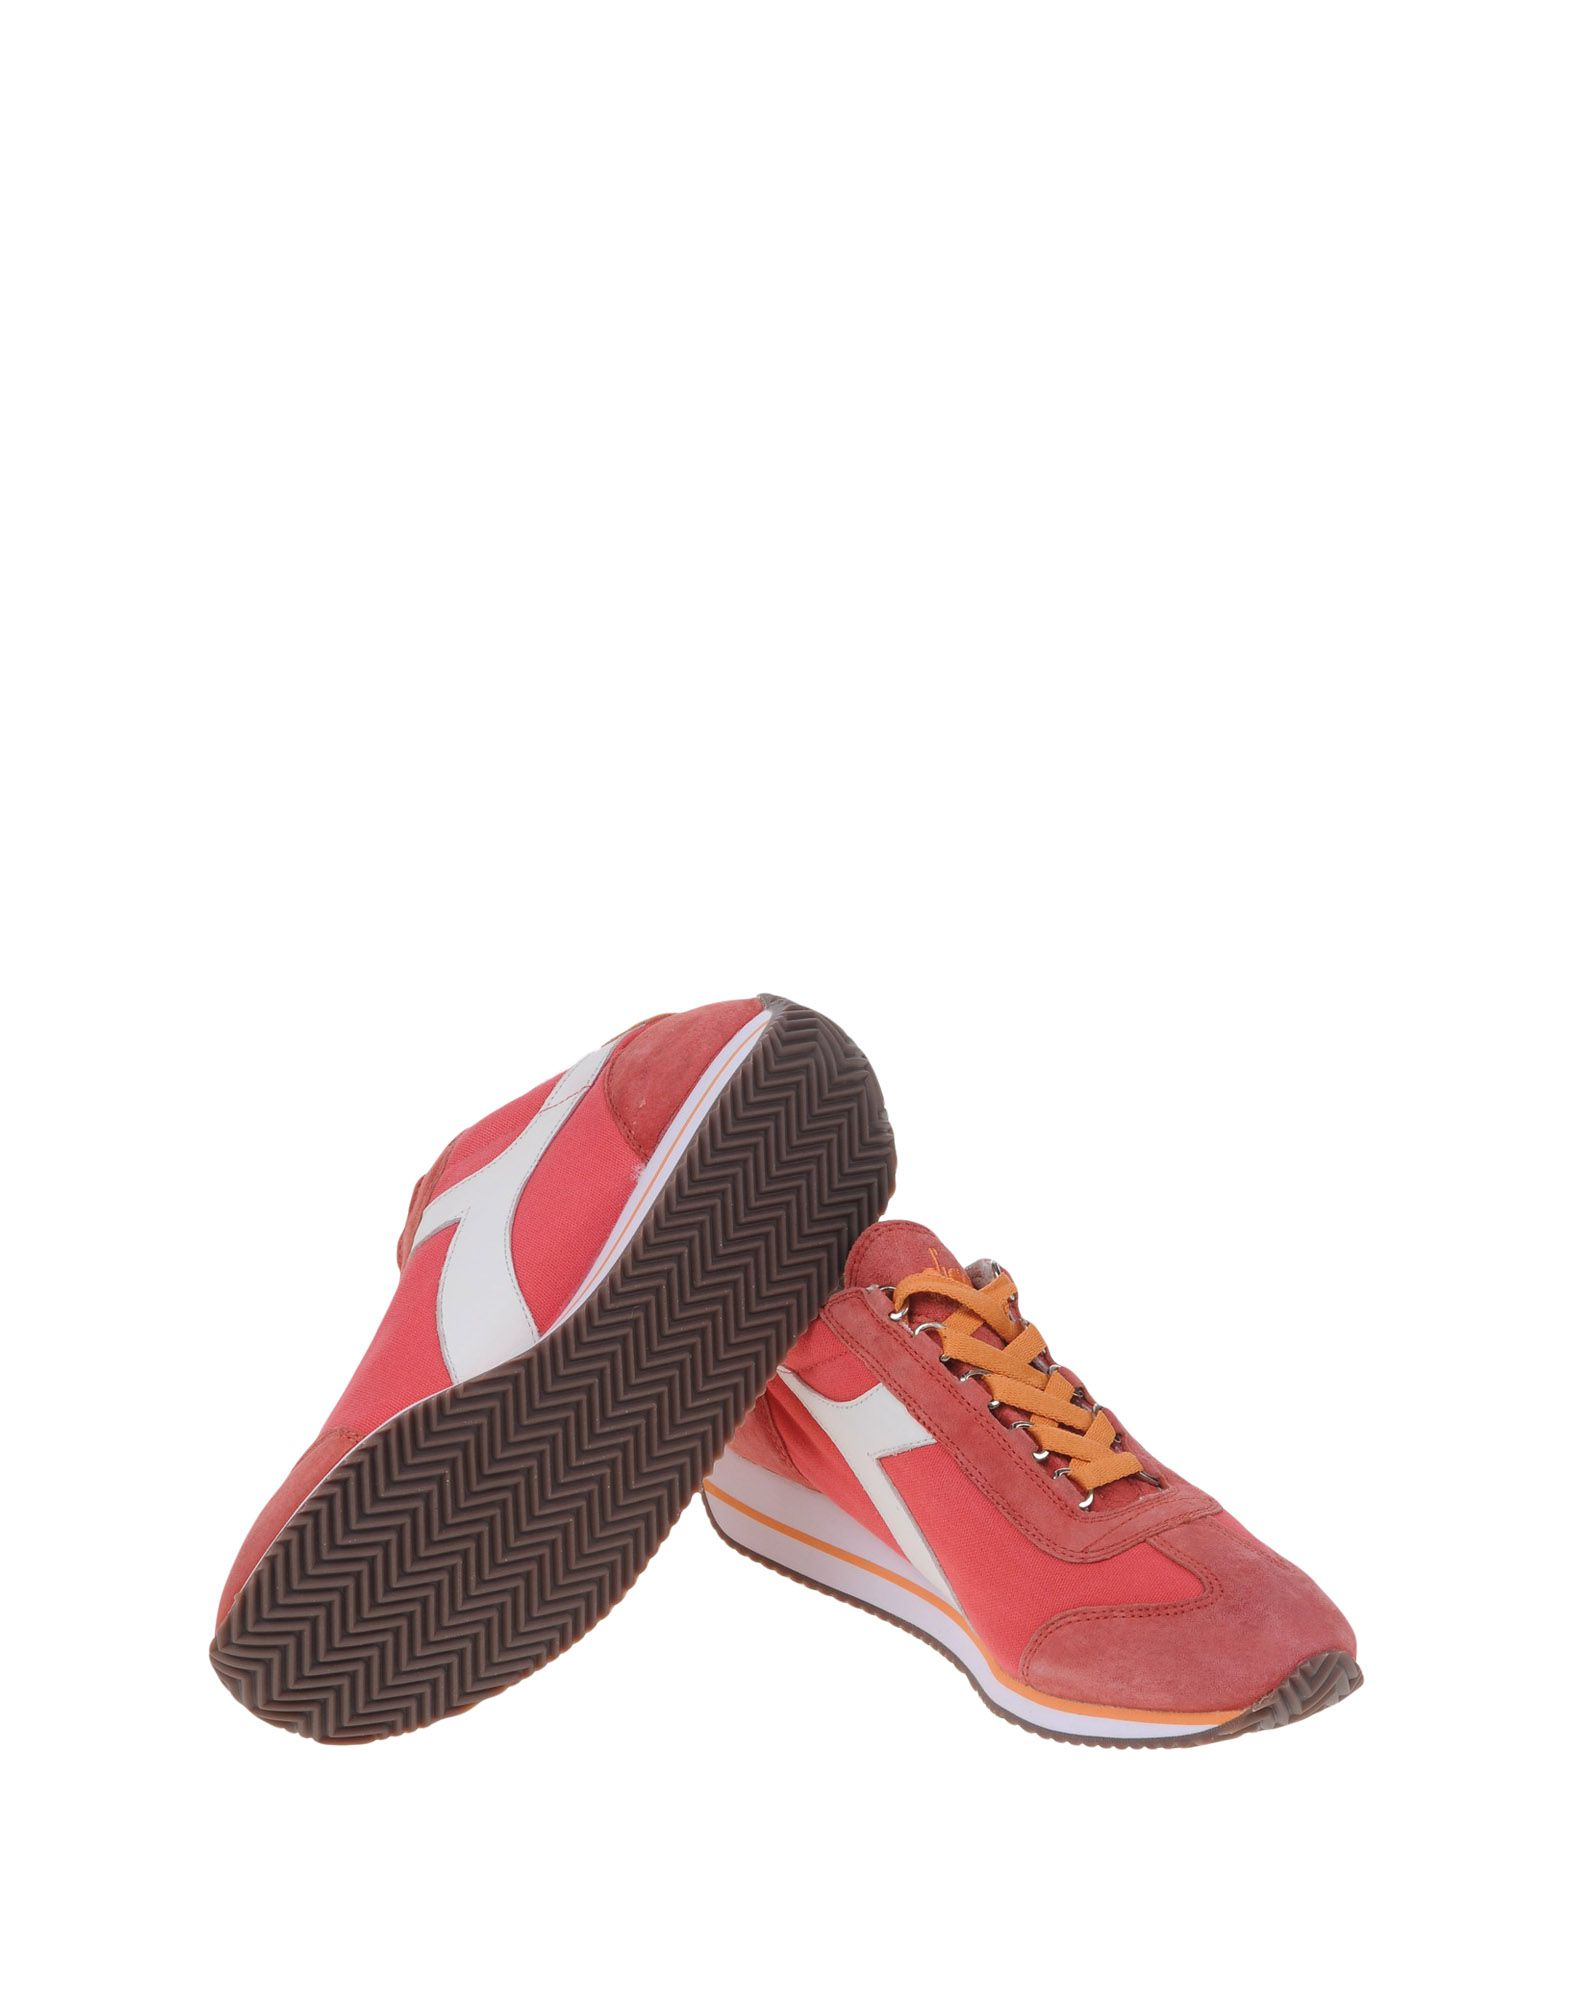 CHAUSSURES - Chaussures à lacetsNovelty Wfg6rjhyX